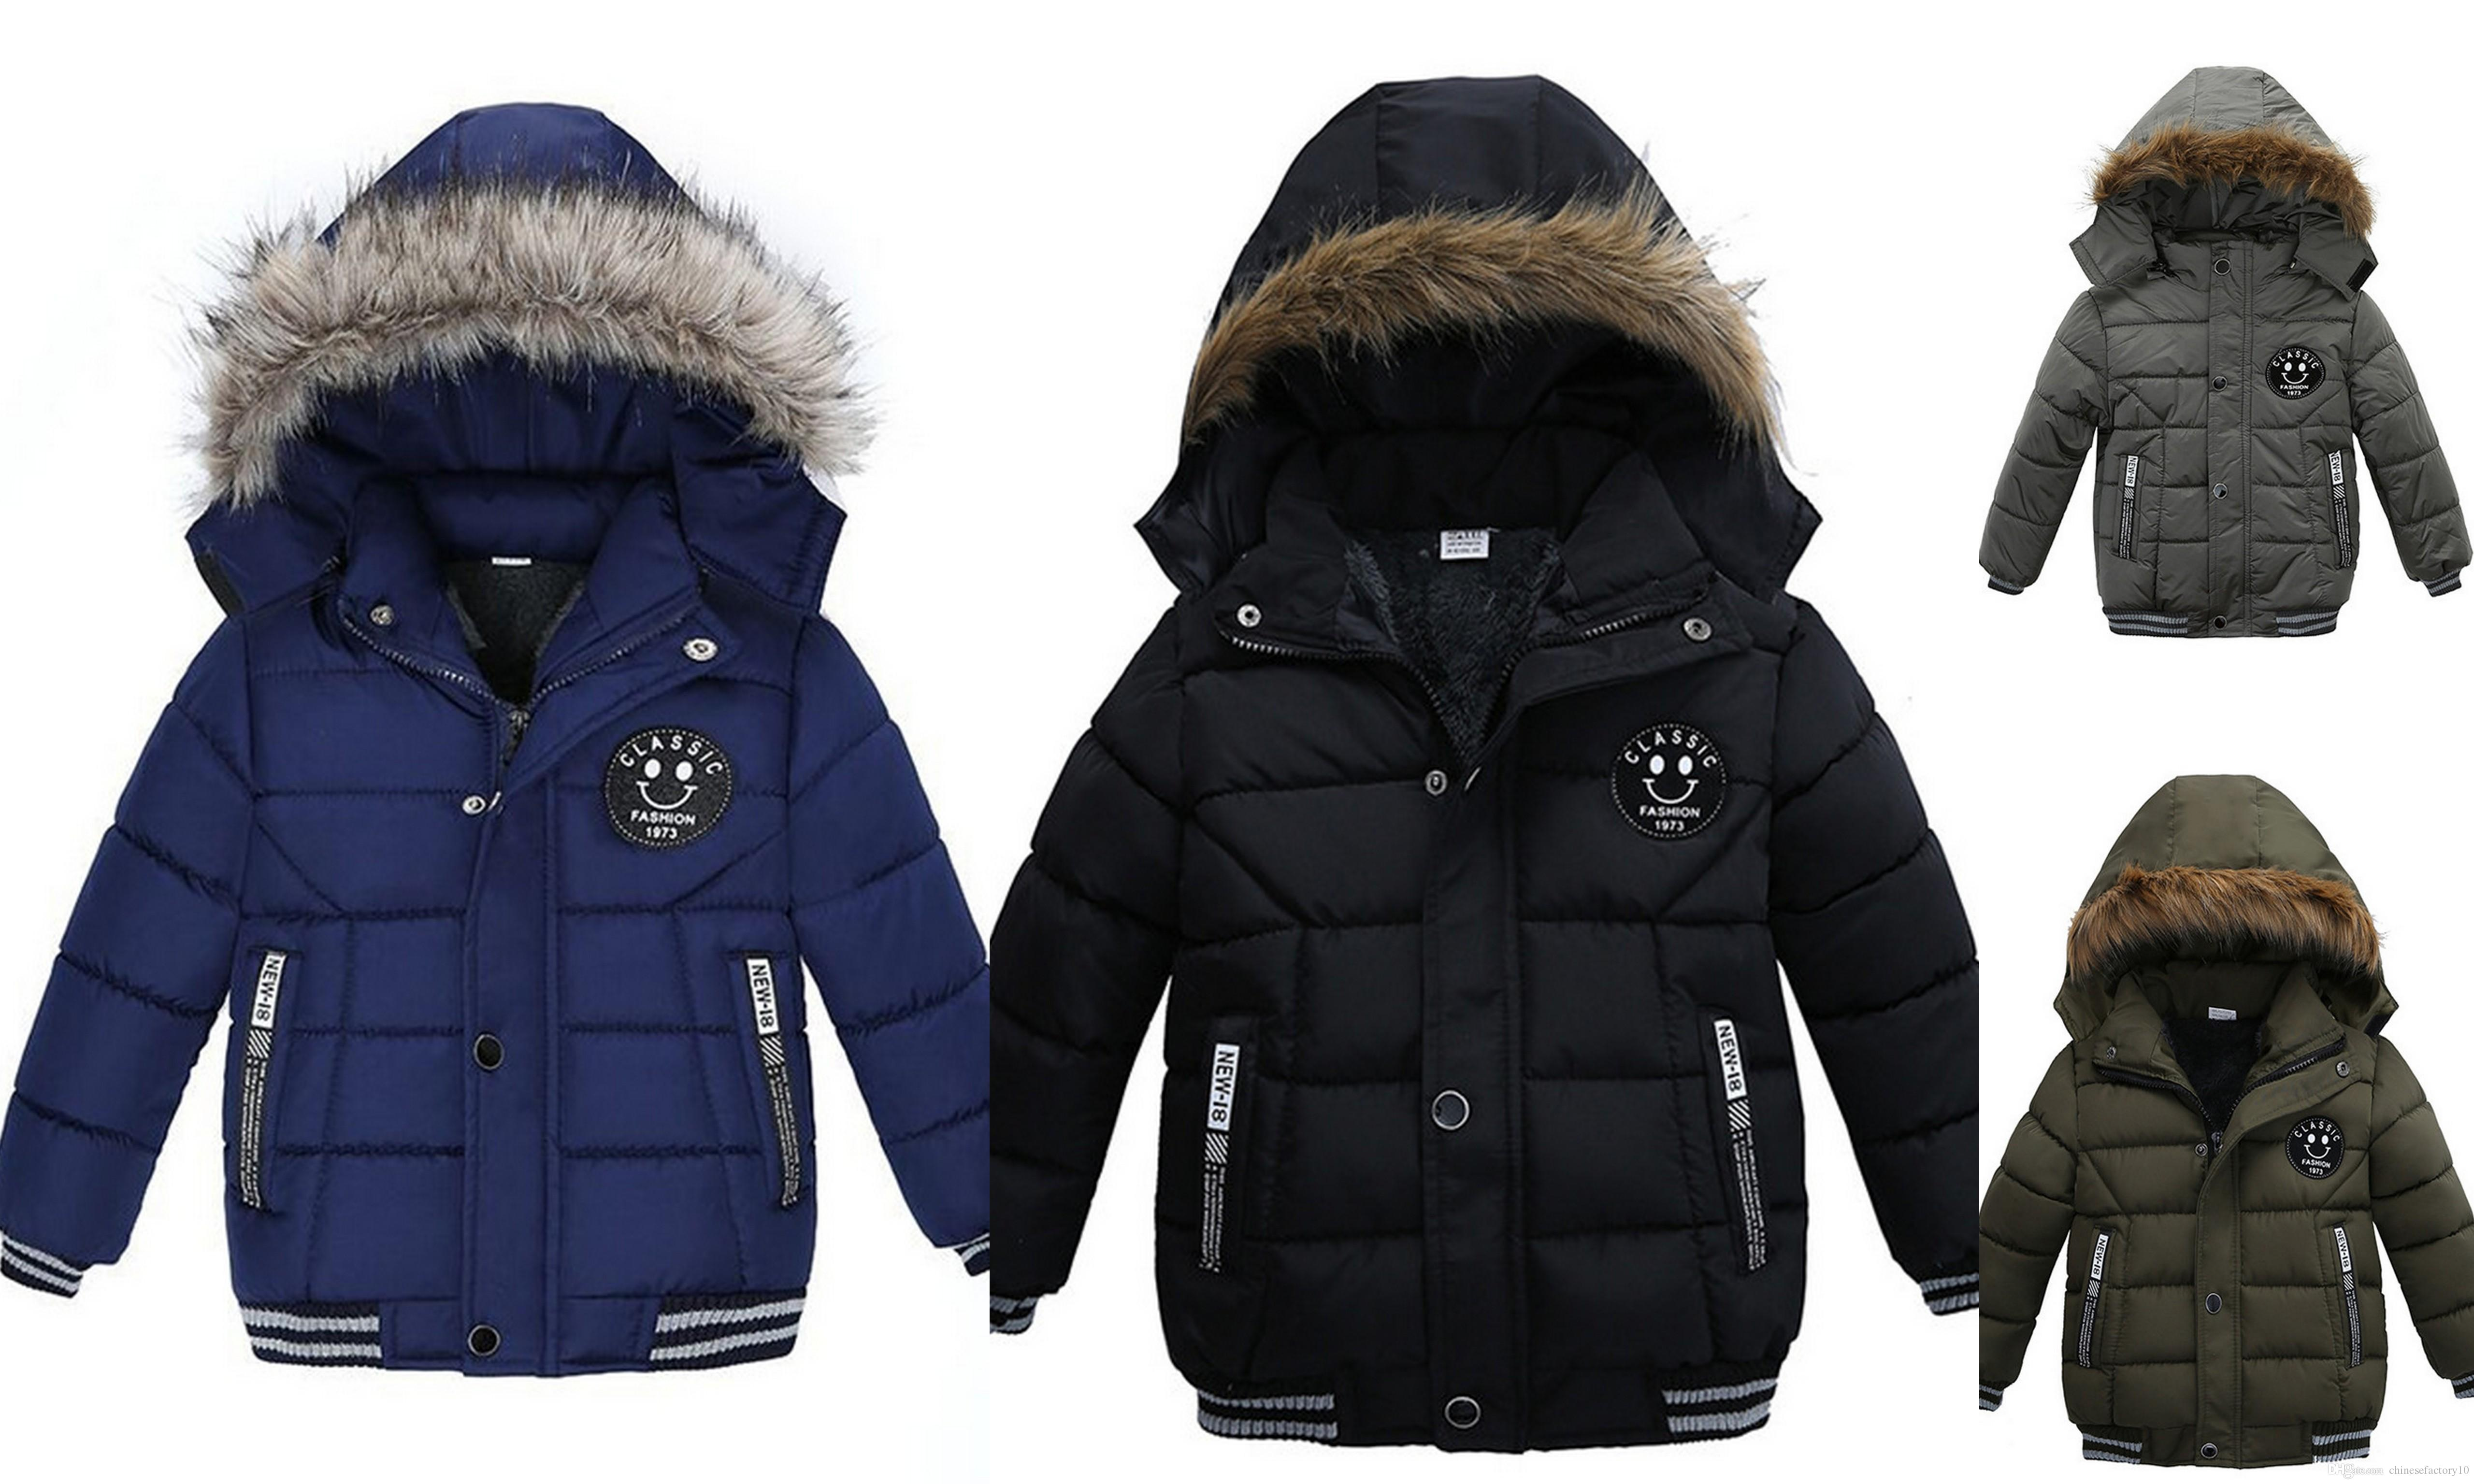 Boys Korean Thick Winter Cotton Padded Jacket Winter Warm Baby Boys  Clothing Outwear Coats Youth Boys Winter Jackets Lightweight Jackets For  Kids From ...